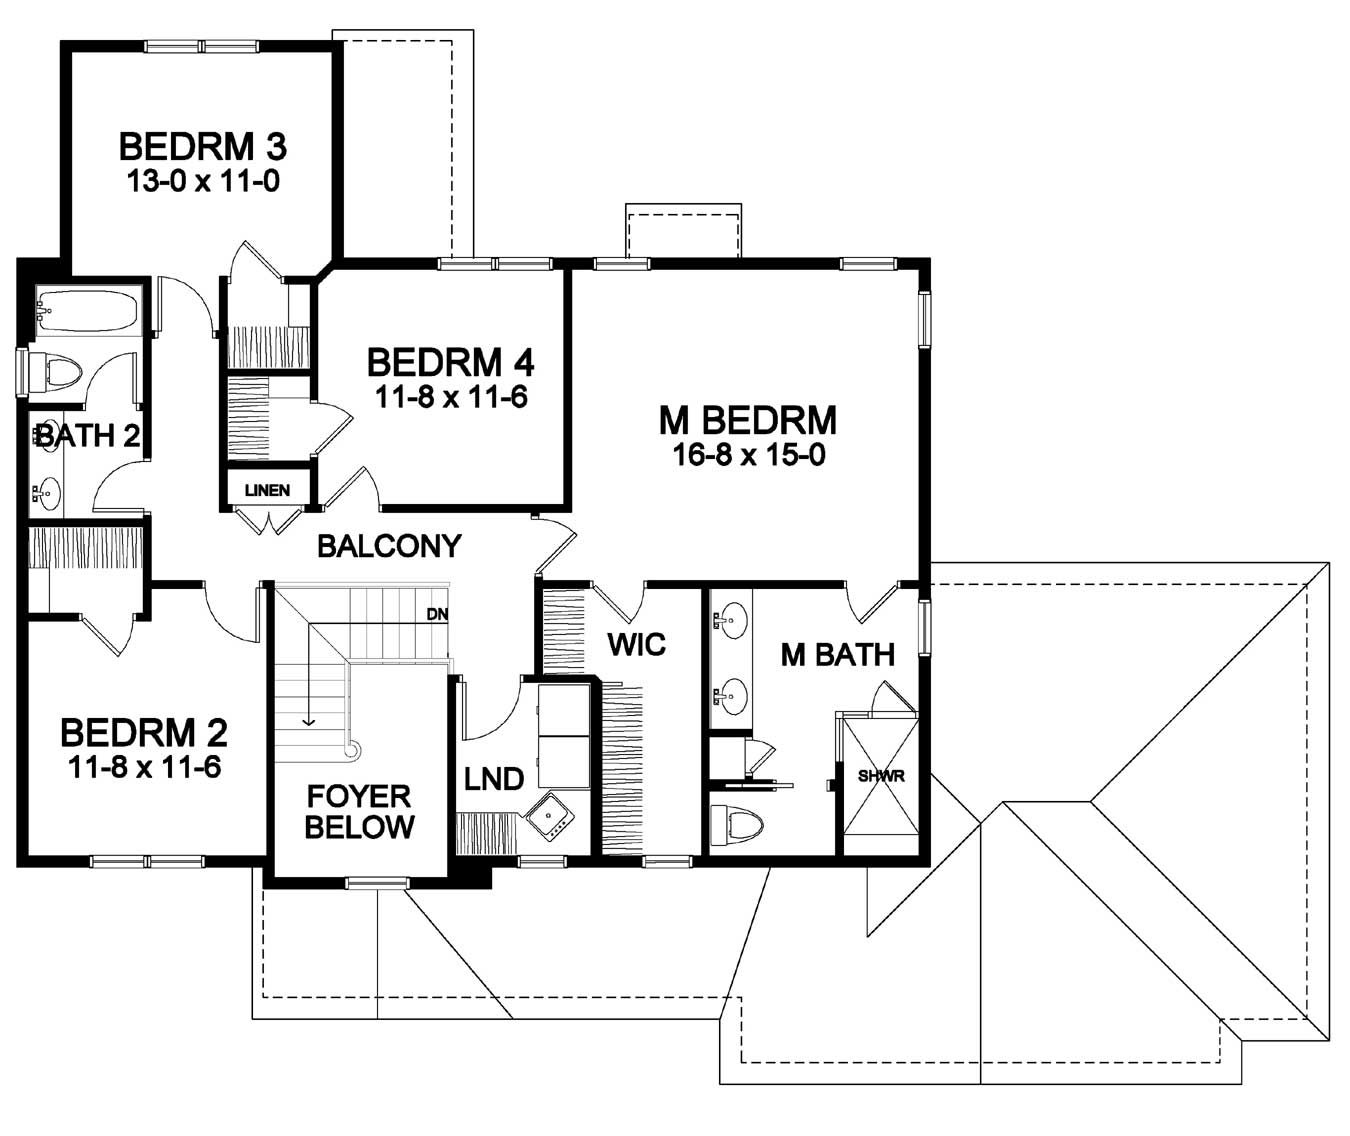 four bedrooms on second floor